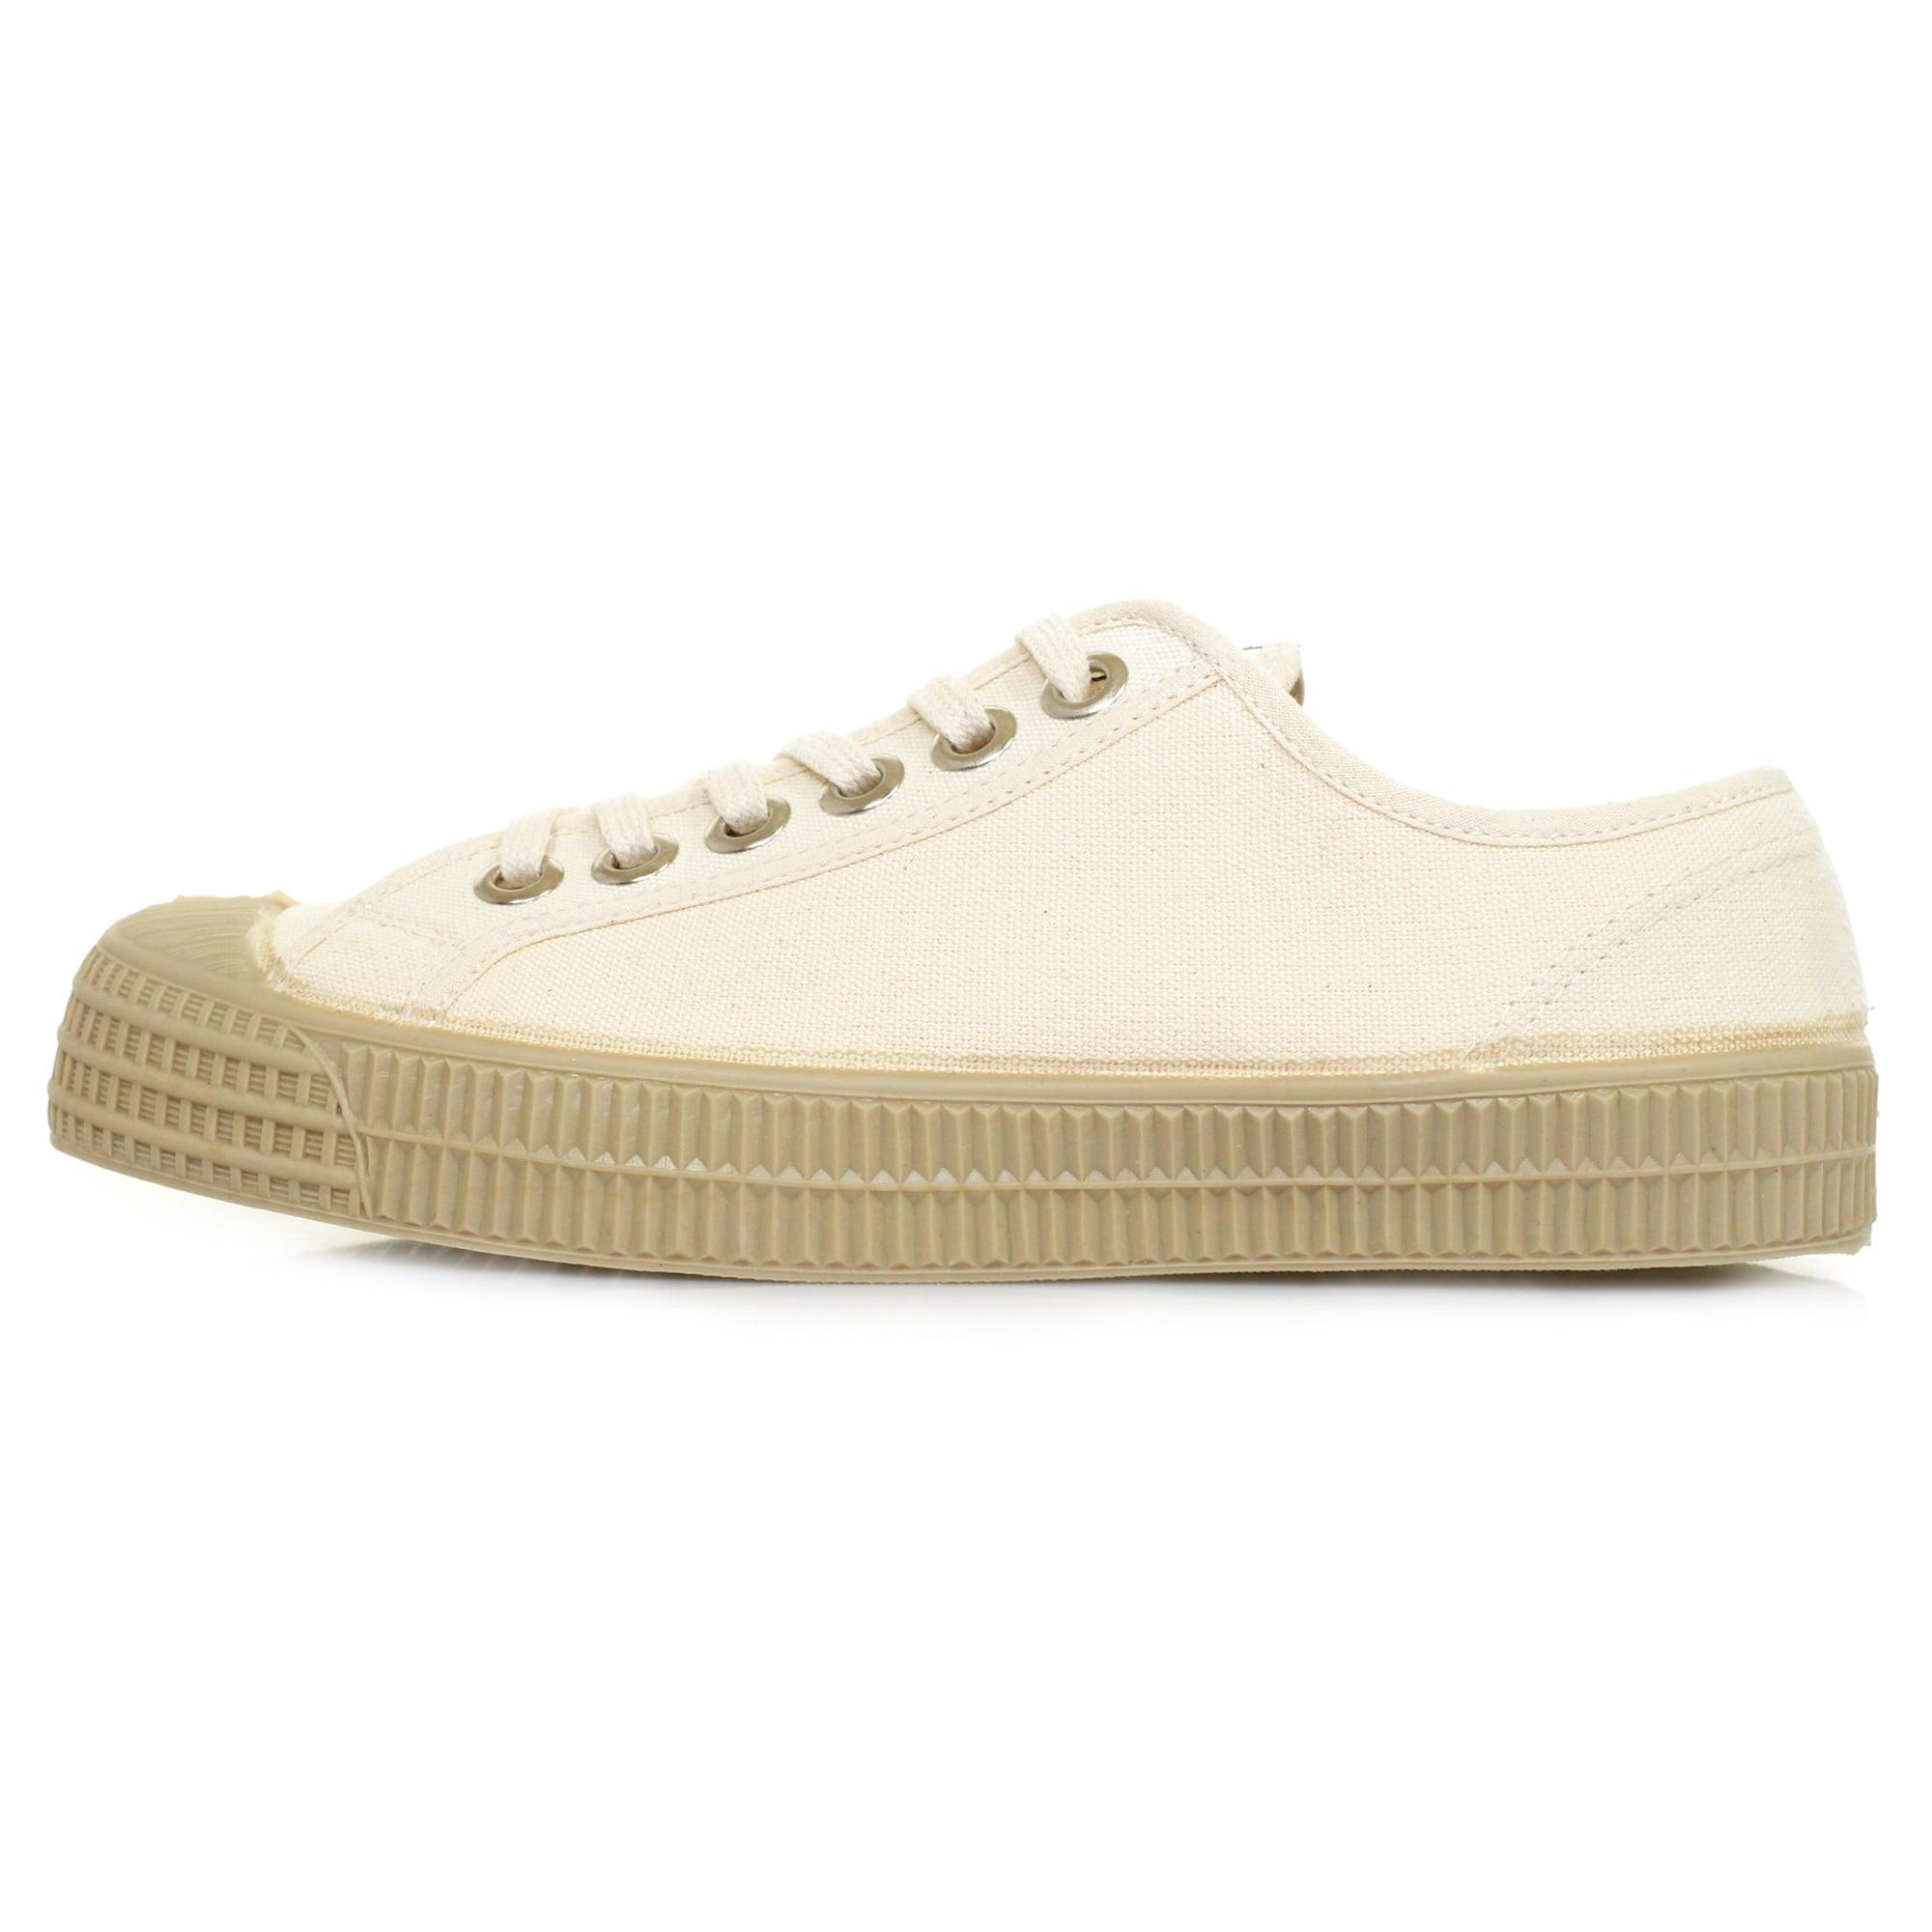 Novesta Shoes - Novesta Star Master Shoes - White yRRTtd